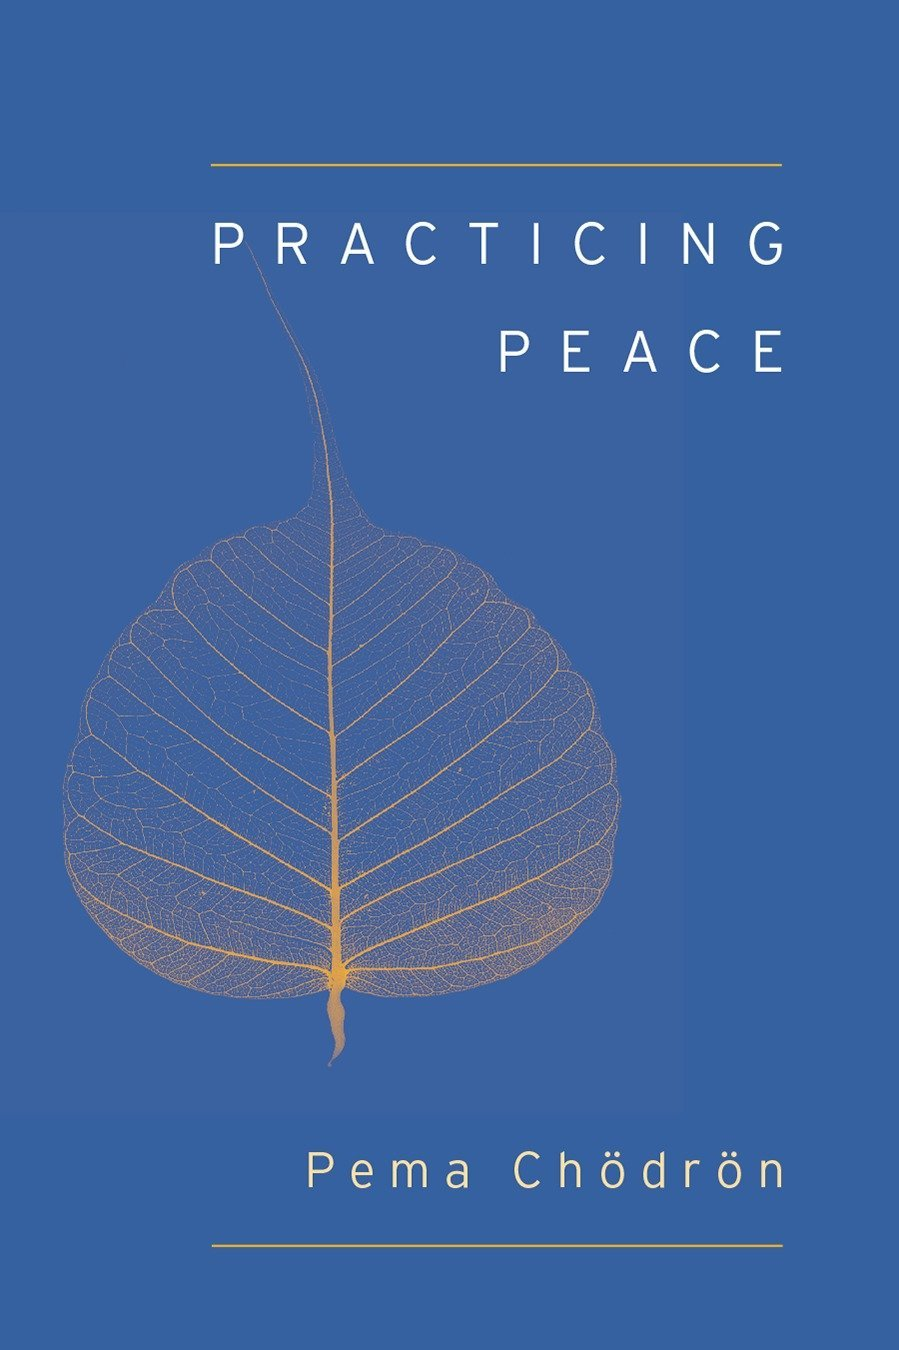 Practicing Peace (Shambhala Pocket Classic) (Shambhala Pocket Classics) pdf